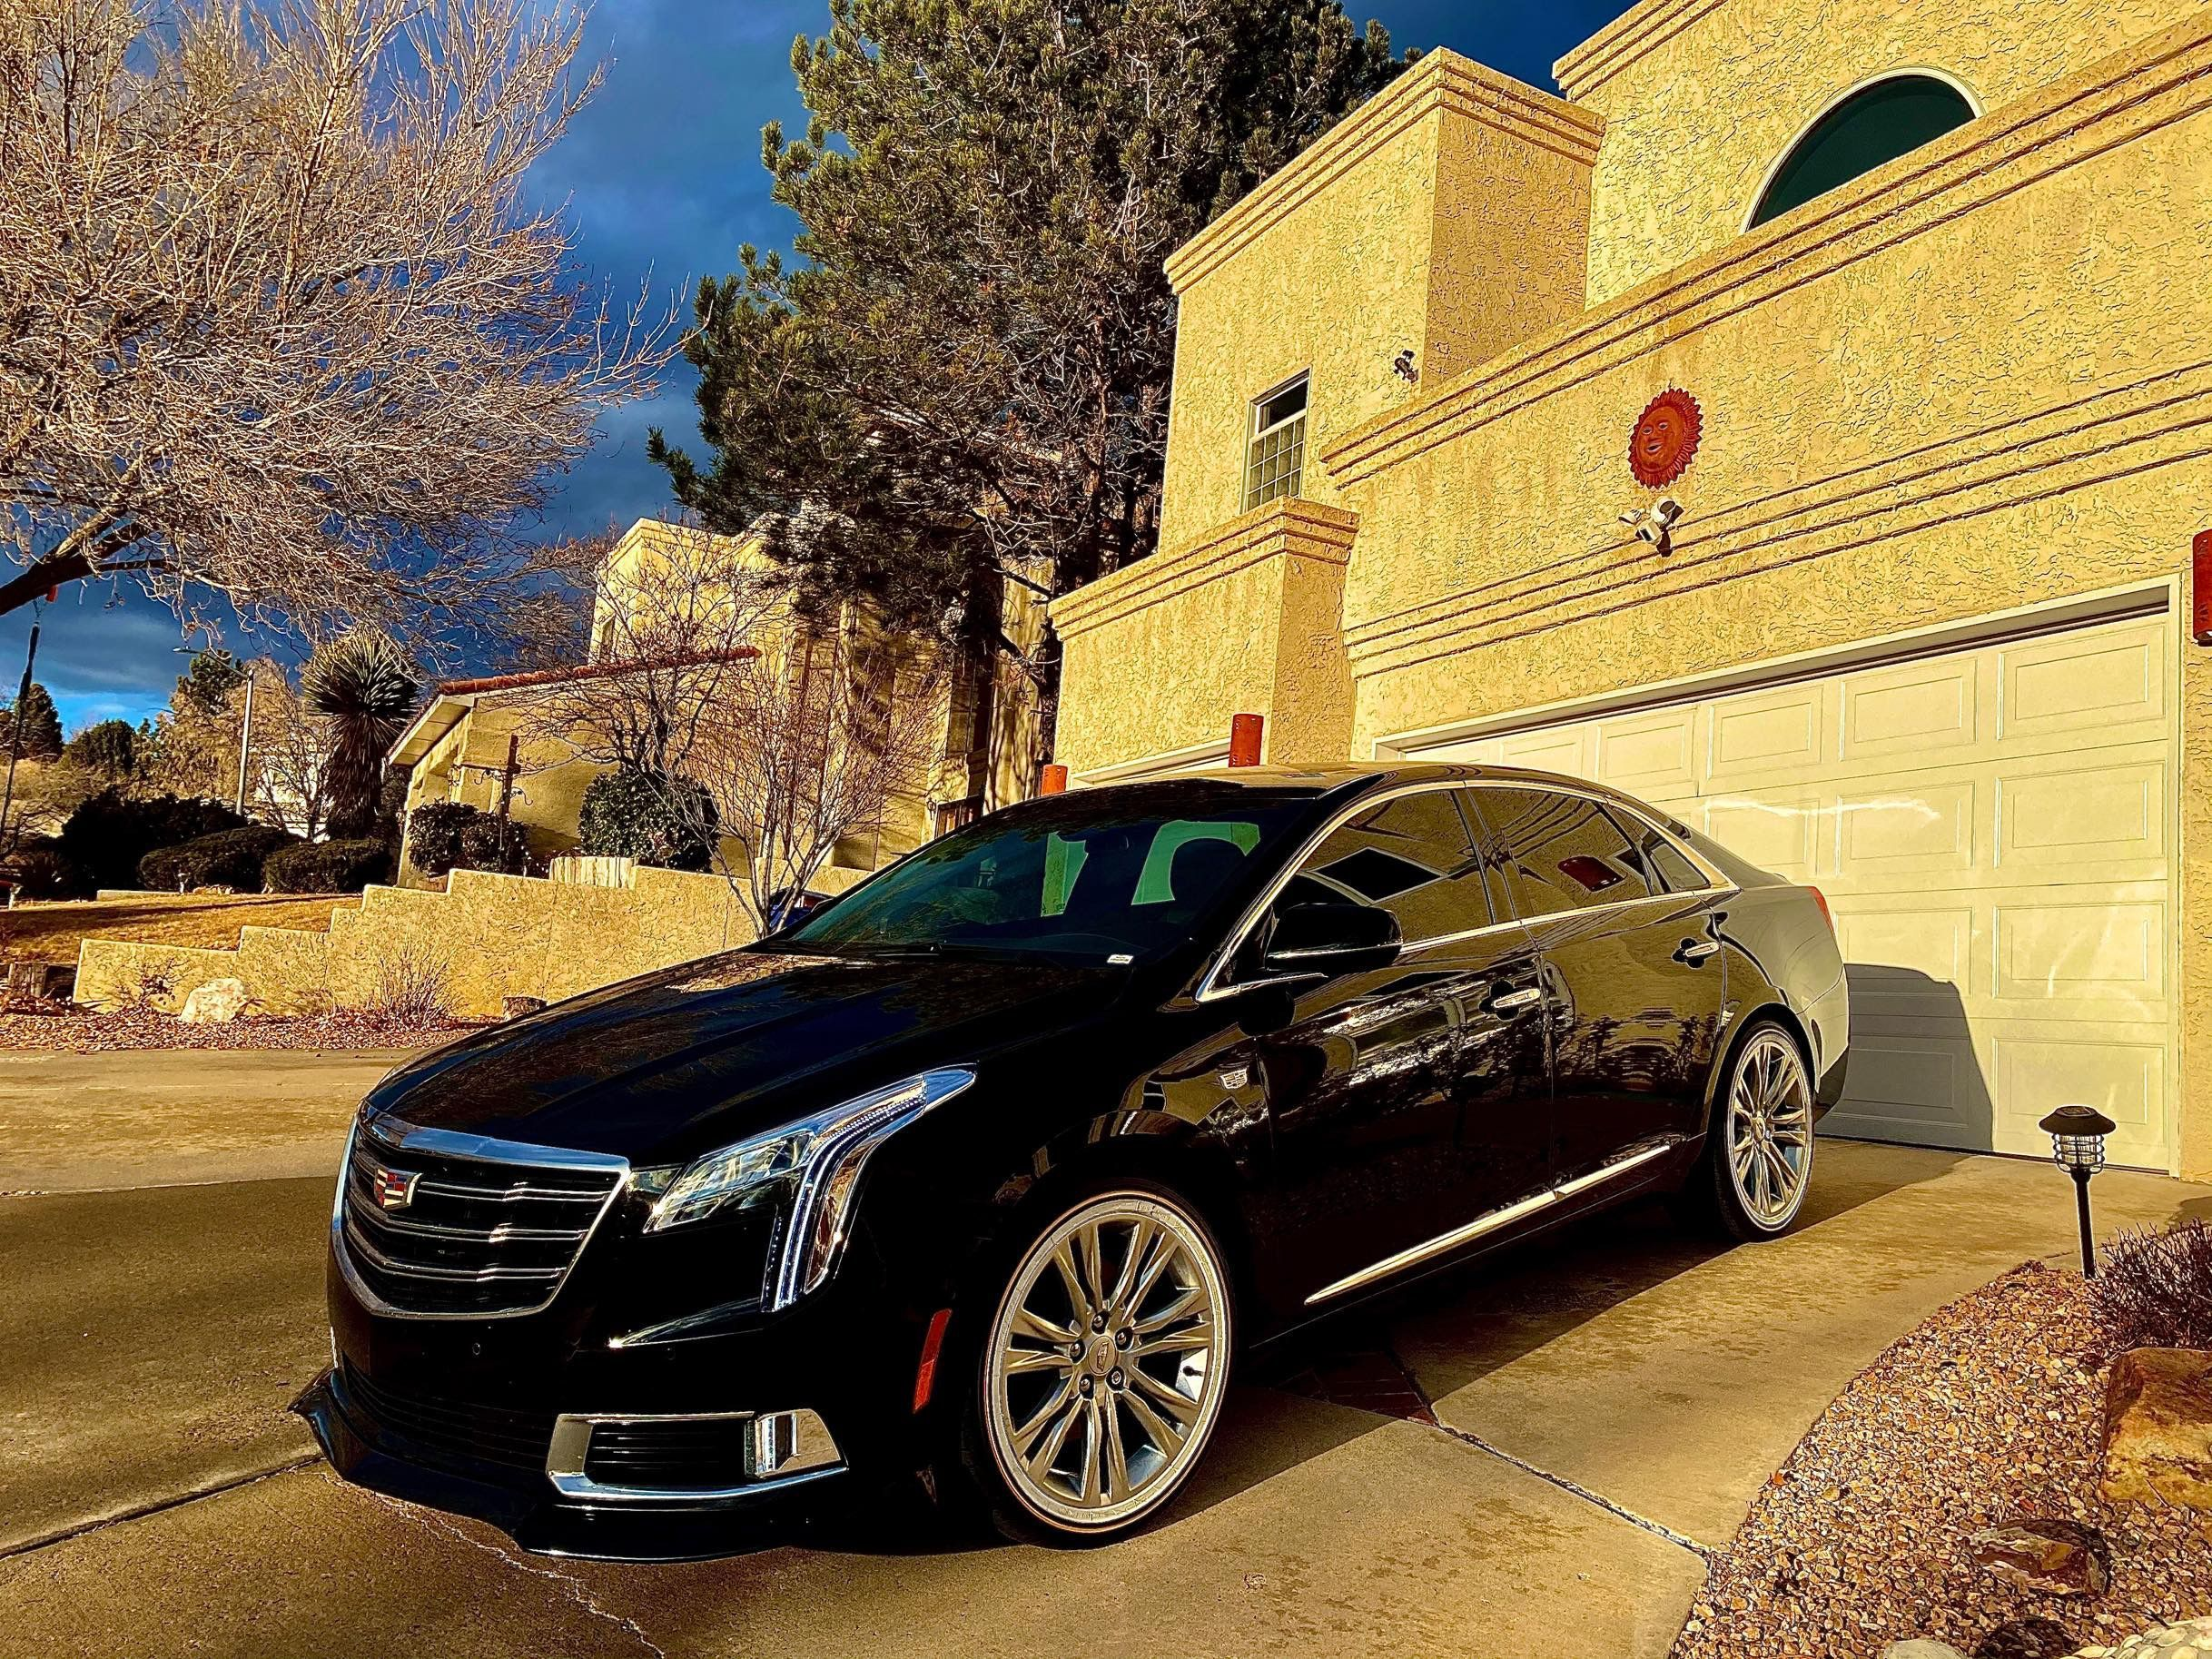 2020 Cadillac XTS Ratings